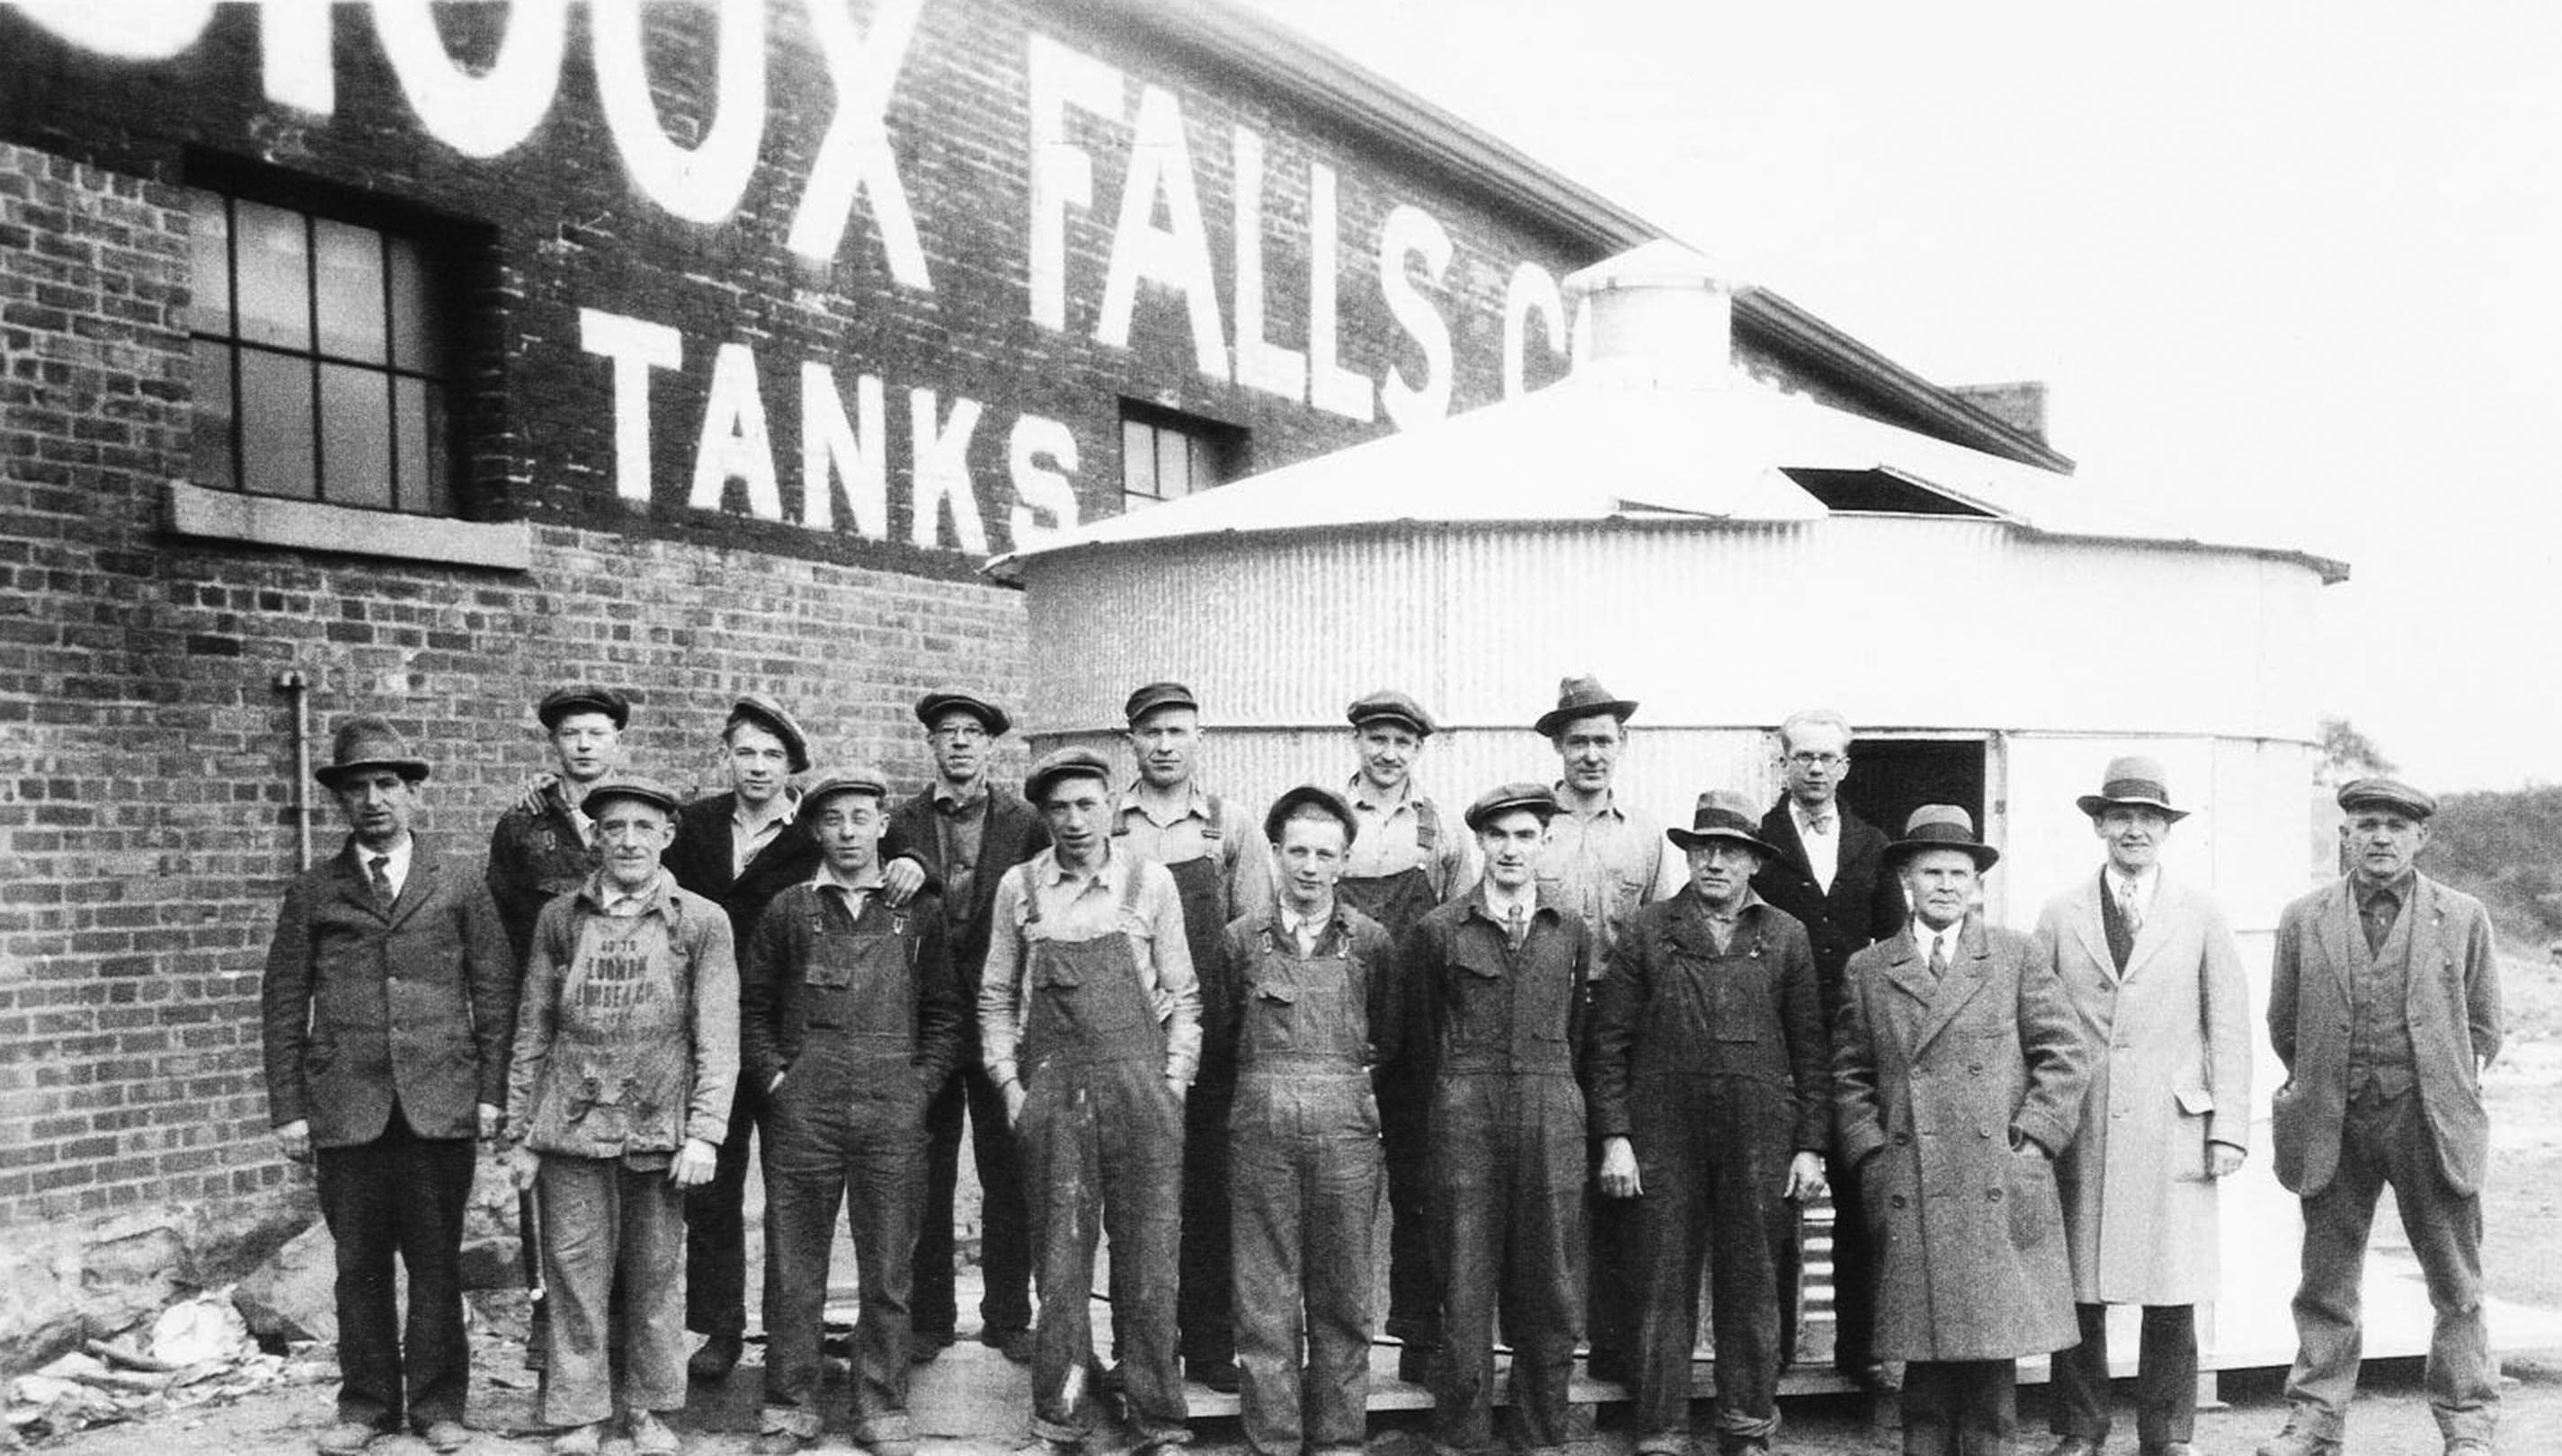 Sioux Steel factory workers & employees with owners Charles & Max Rysdon (third and second from the right).